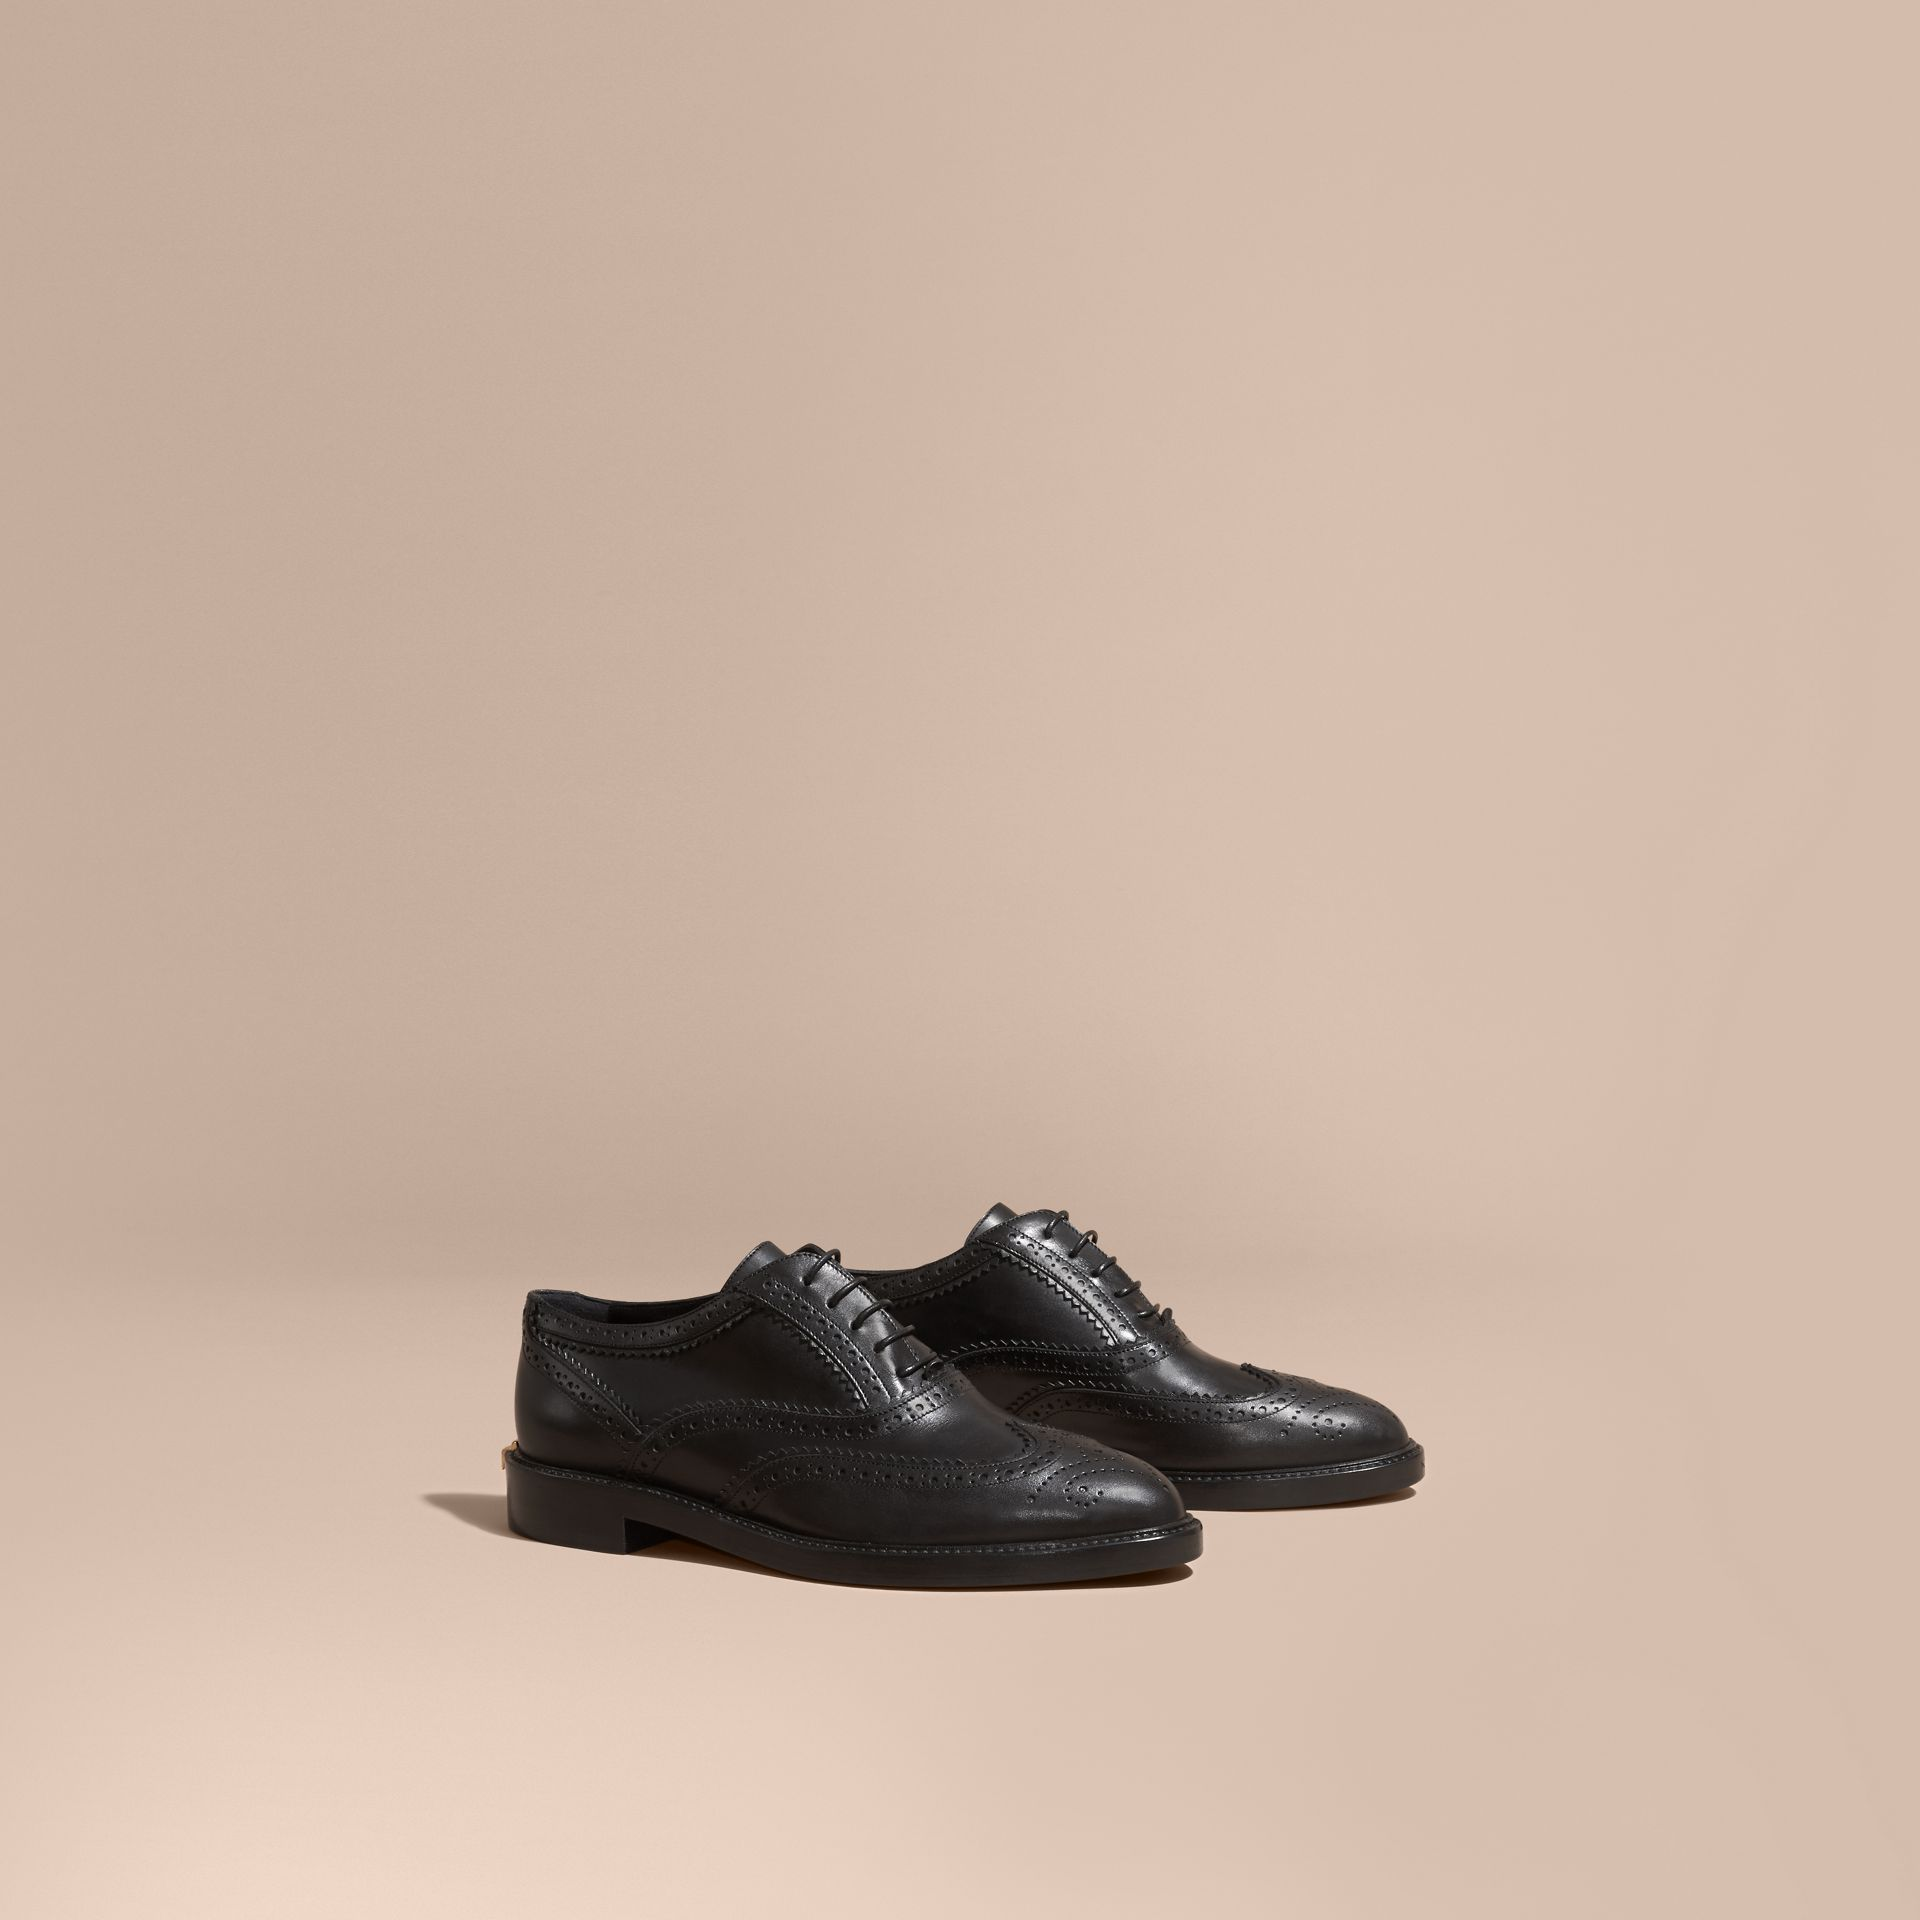 Leather Wingtip Brogues in Black - Women | Burberry - gallery image 1